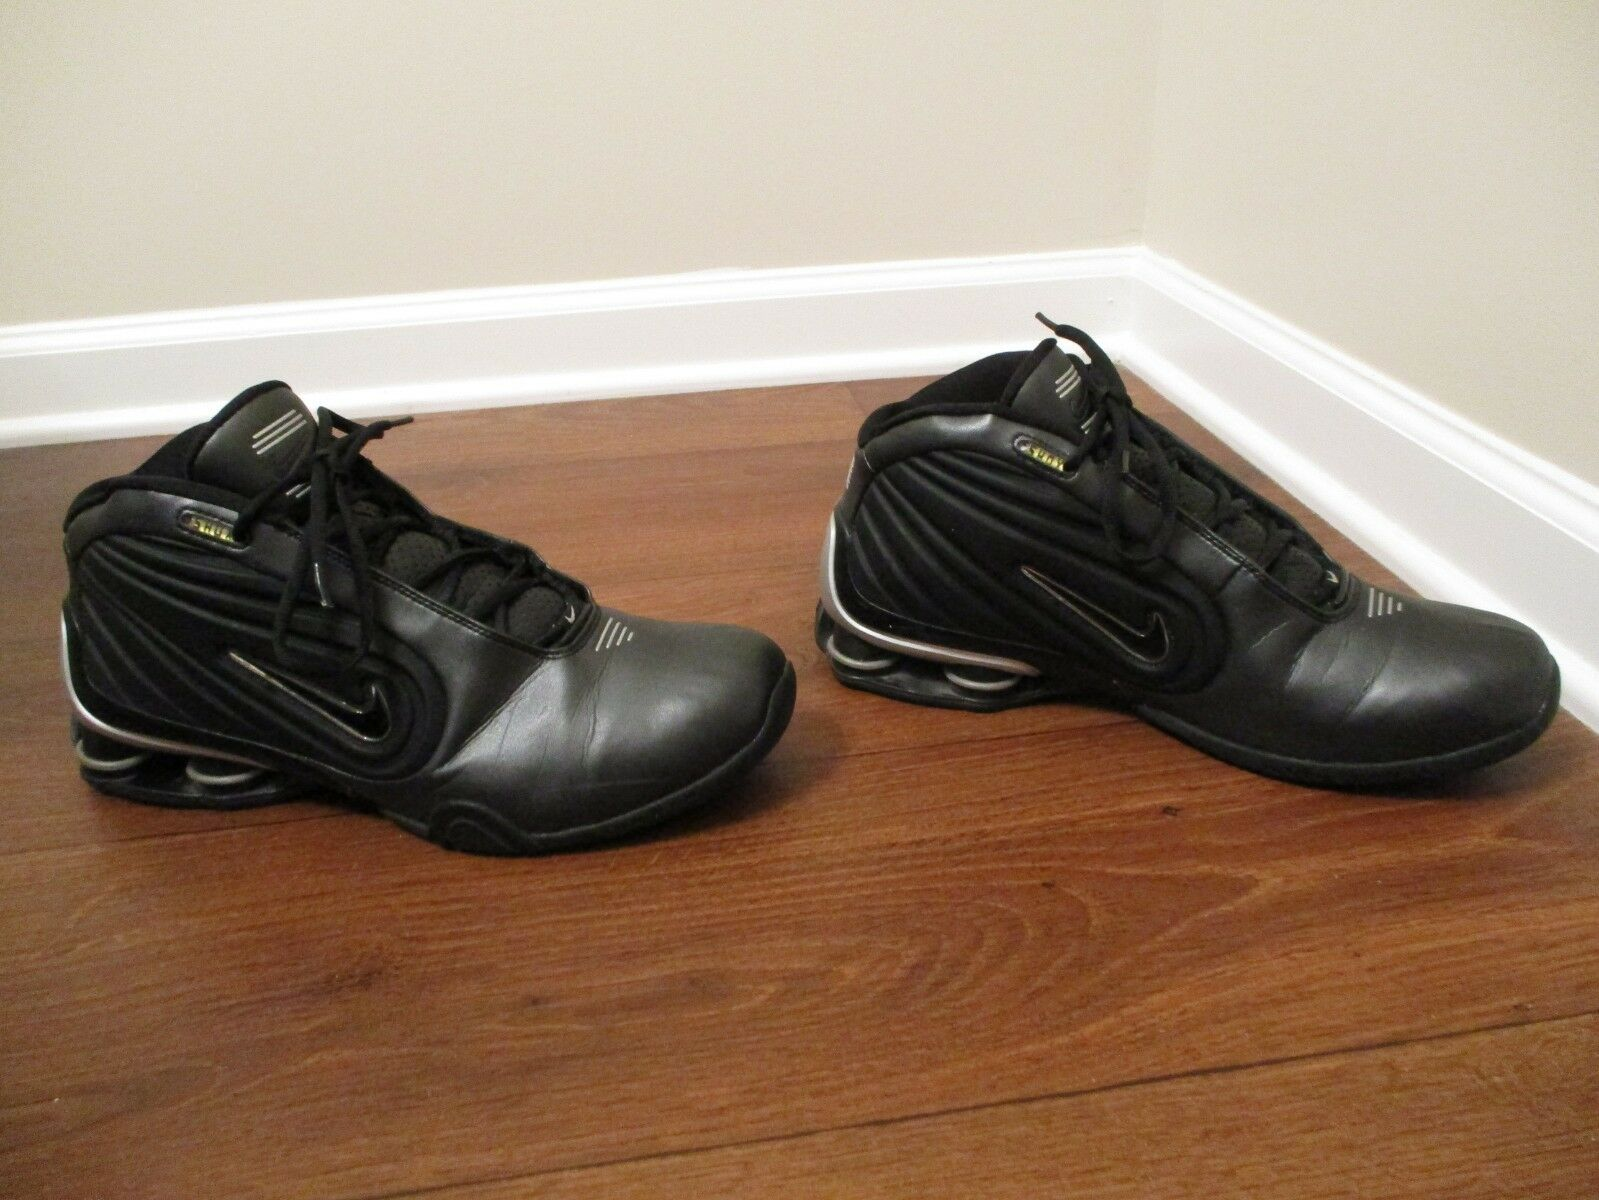 Classic 2002 Used Worn Worn Worn Size 12 Nike Shox Limitless TB shoes Black & Silver 60e63a